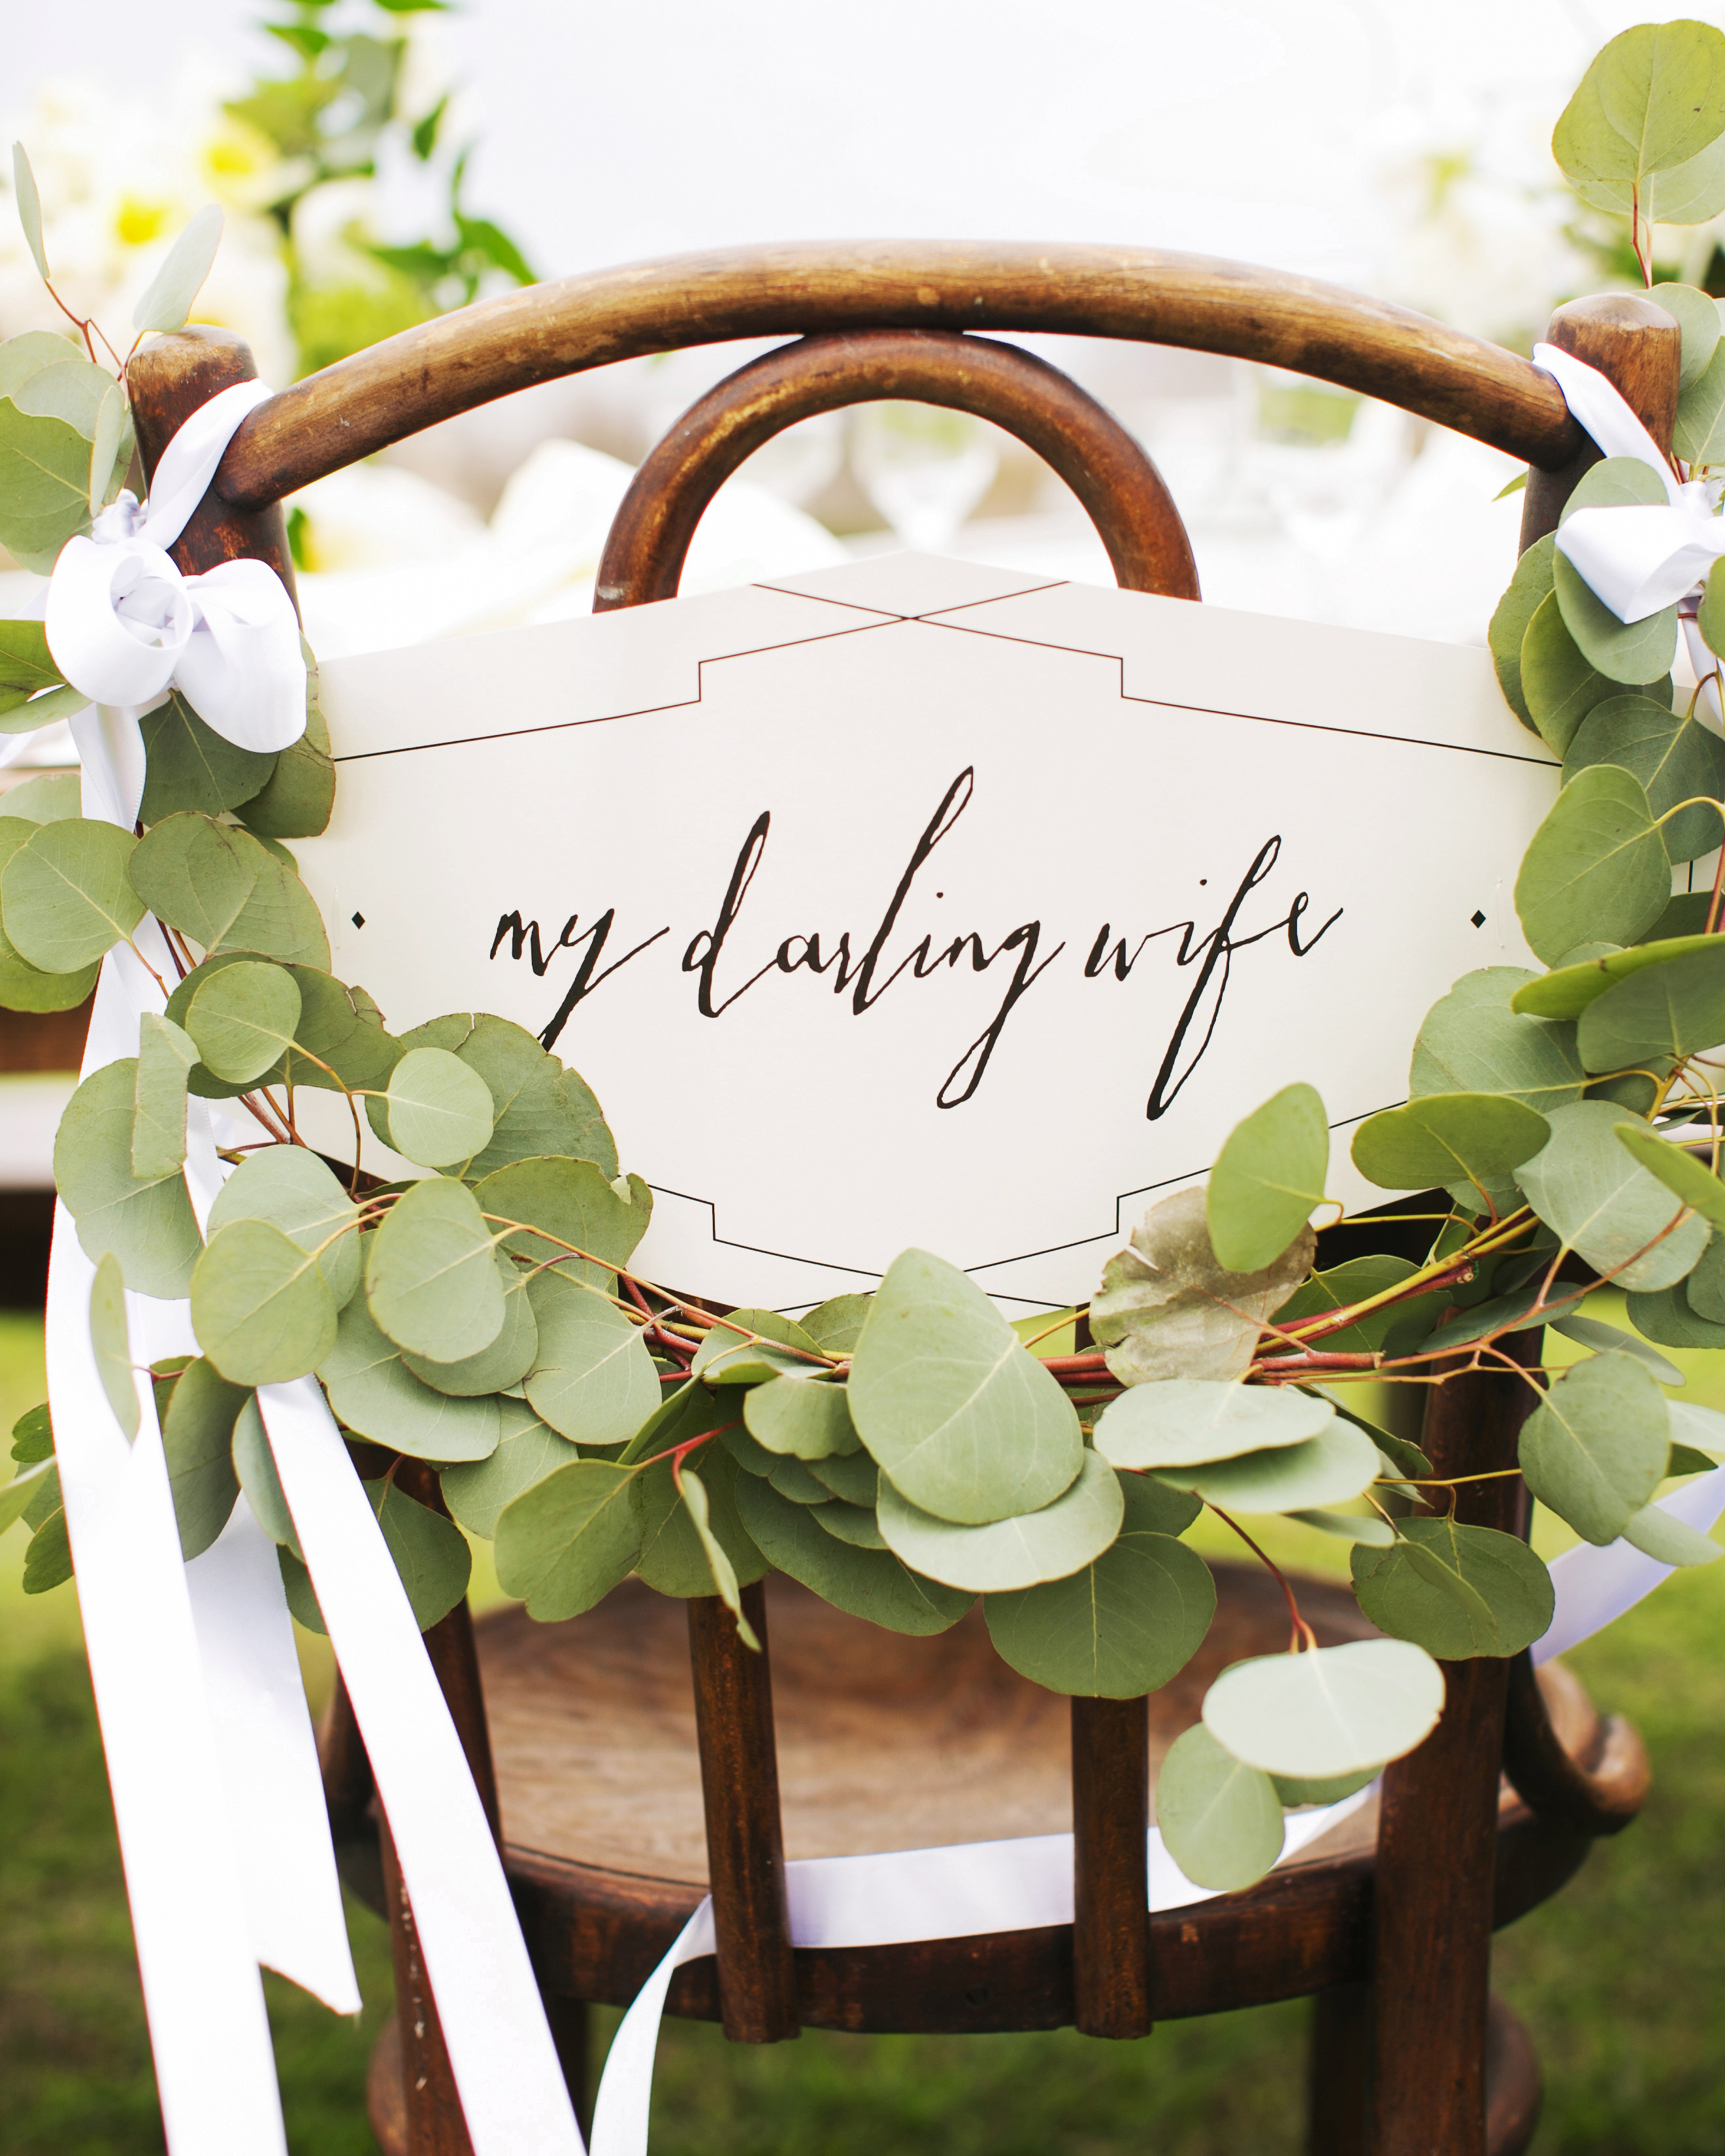 eucalyptus wrap wood chair darling wife sign